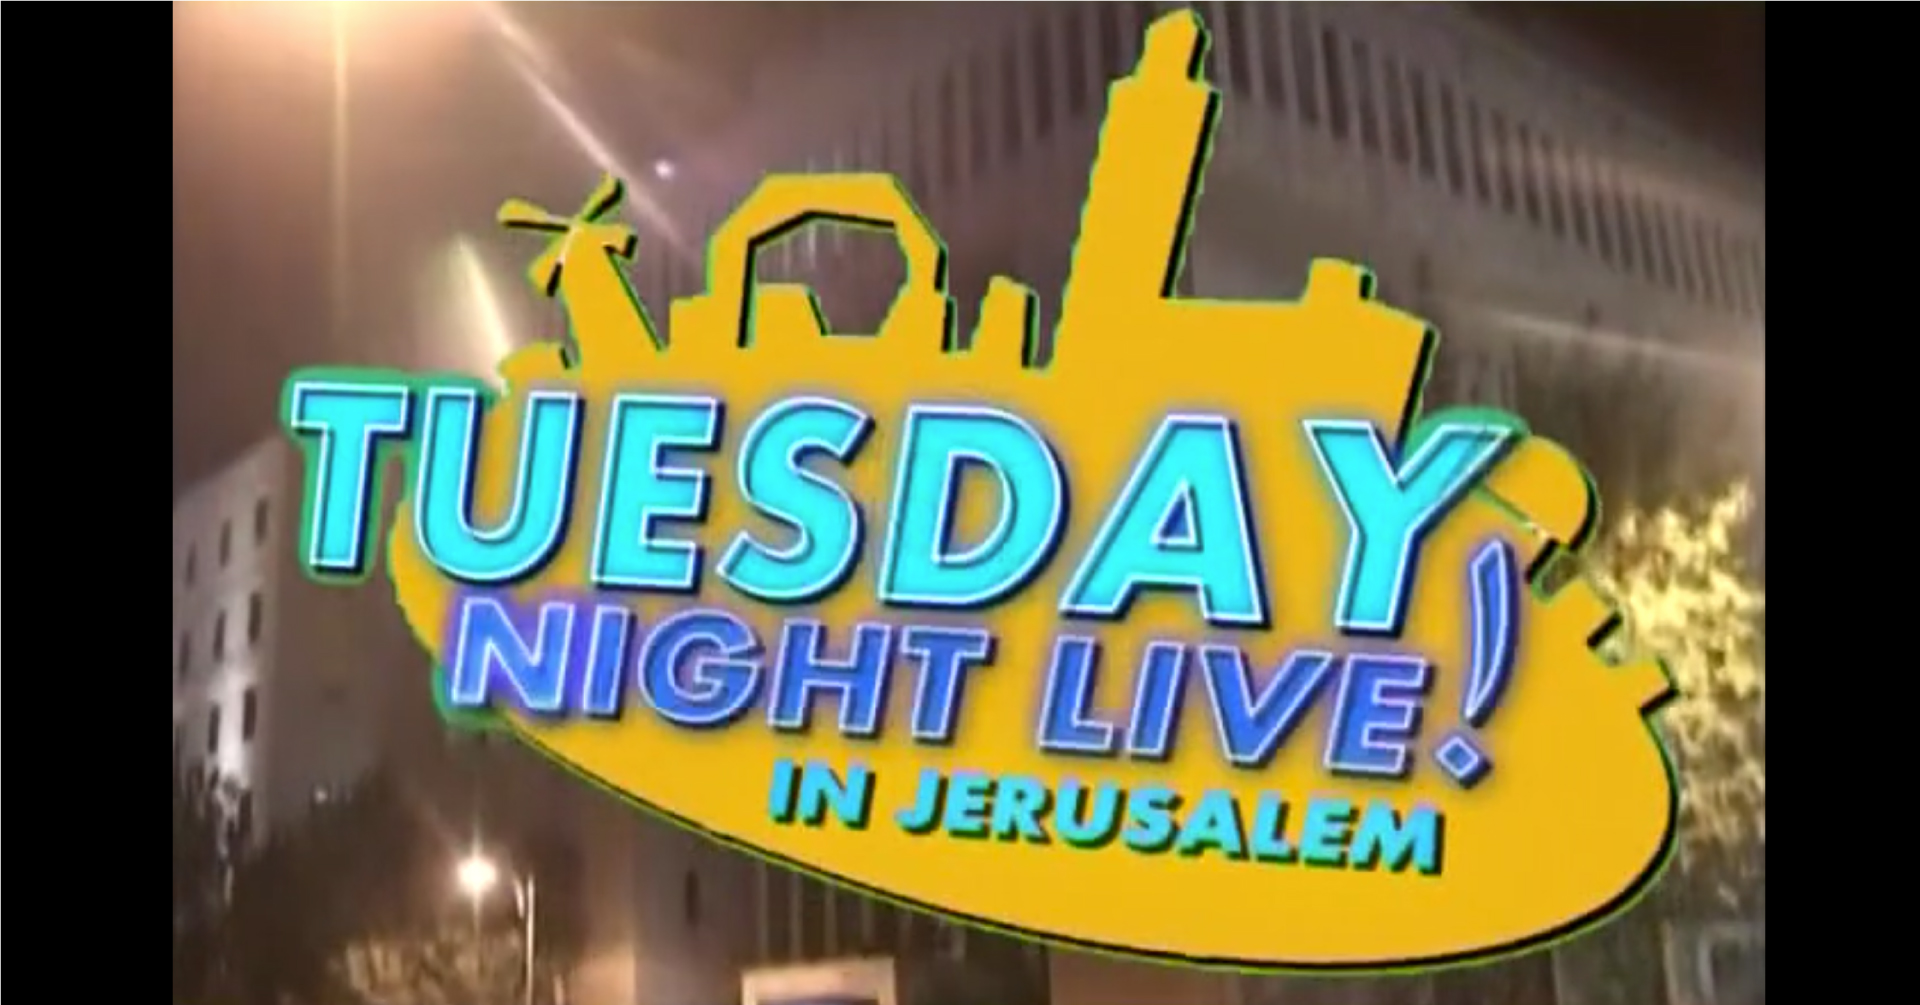 Tuesday Night Live